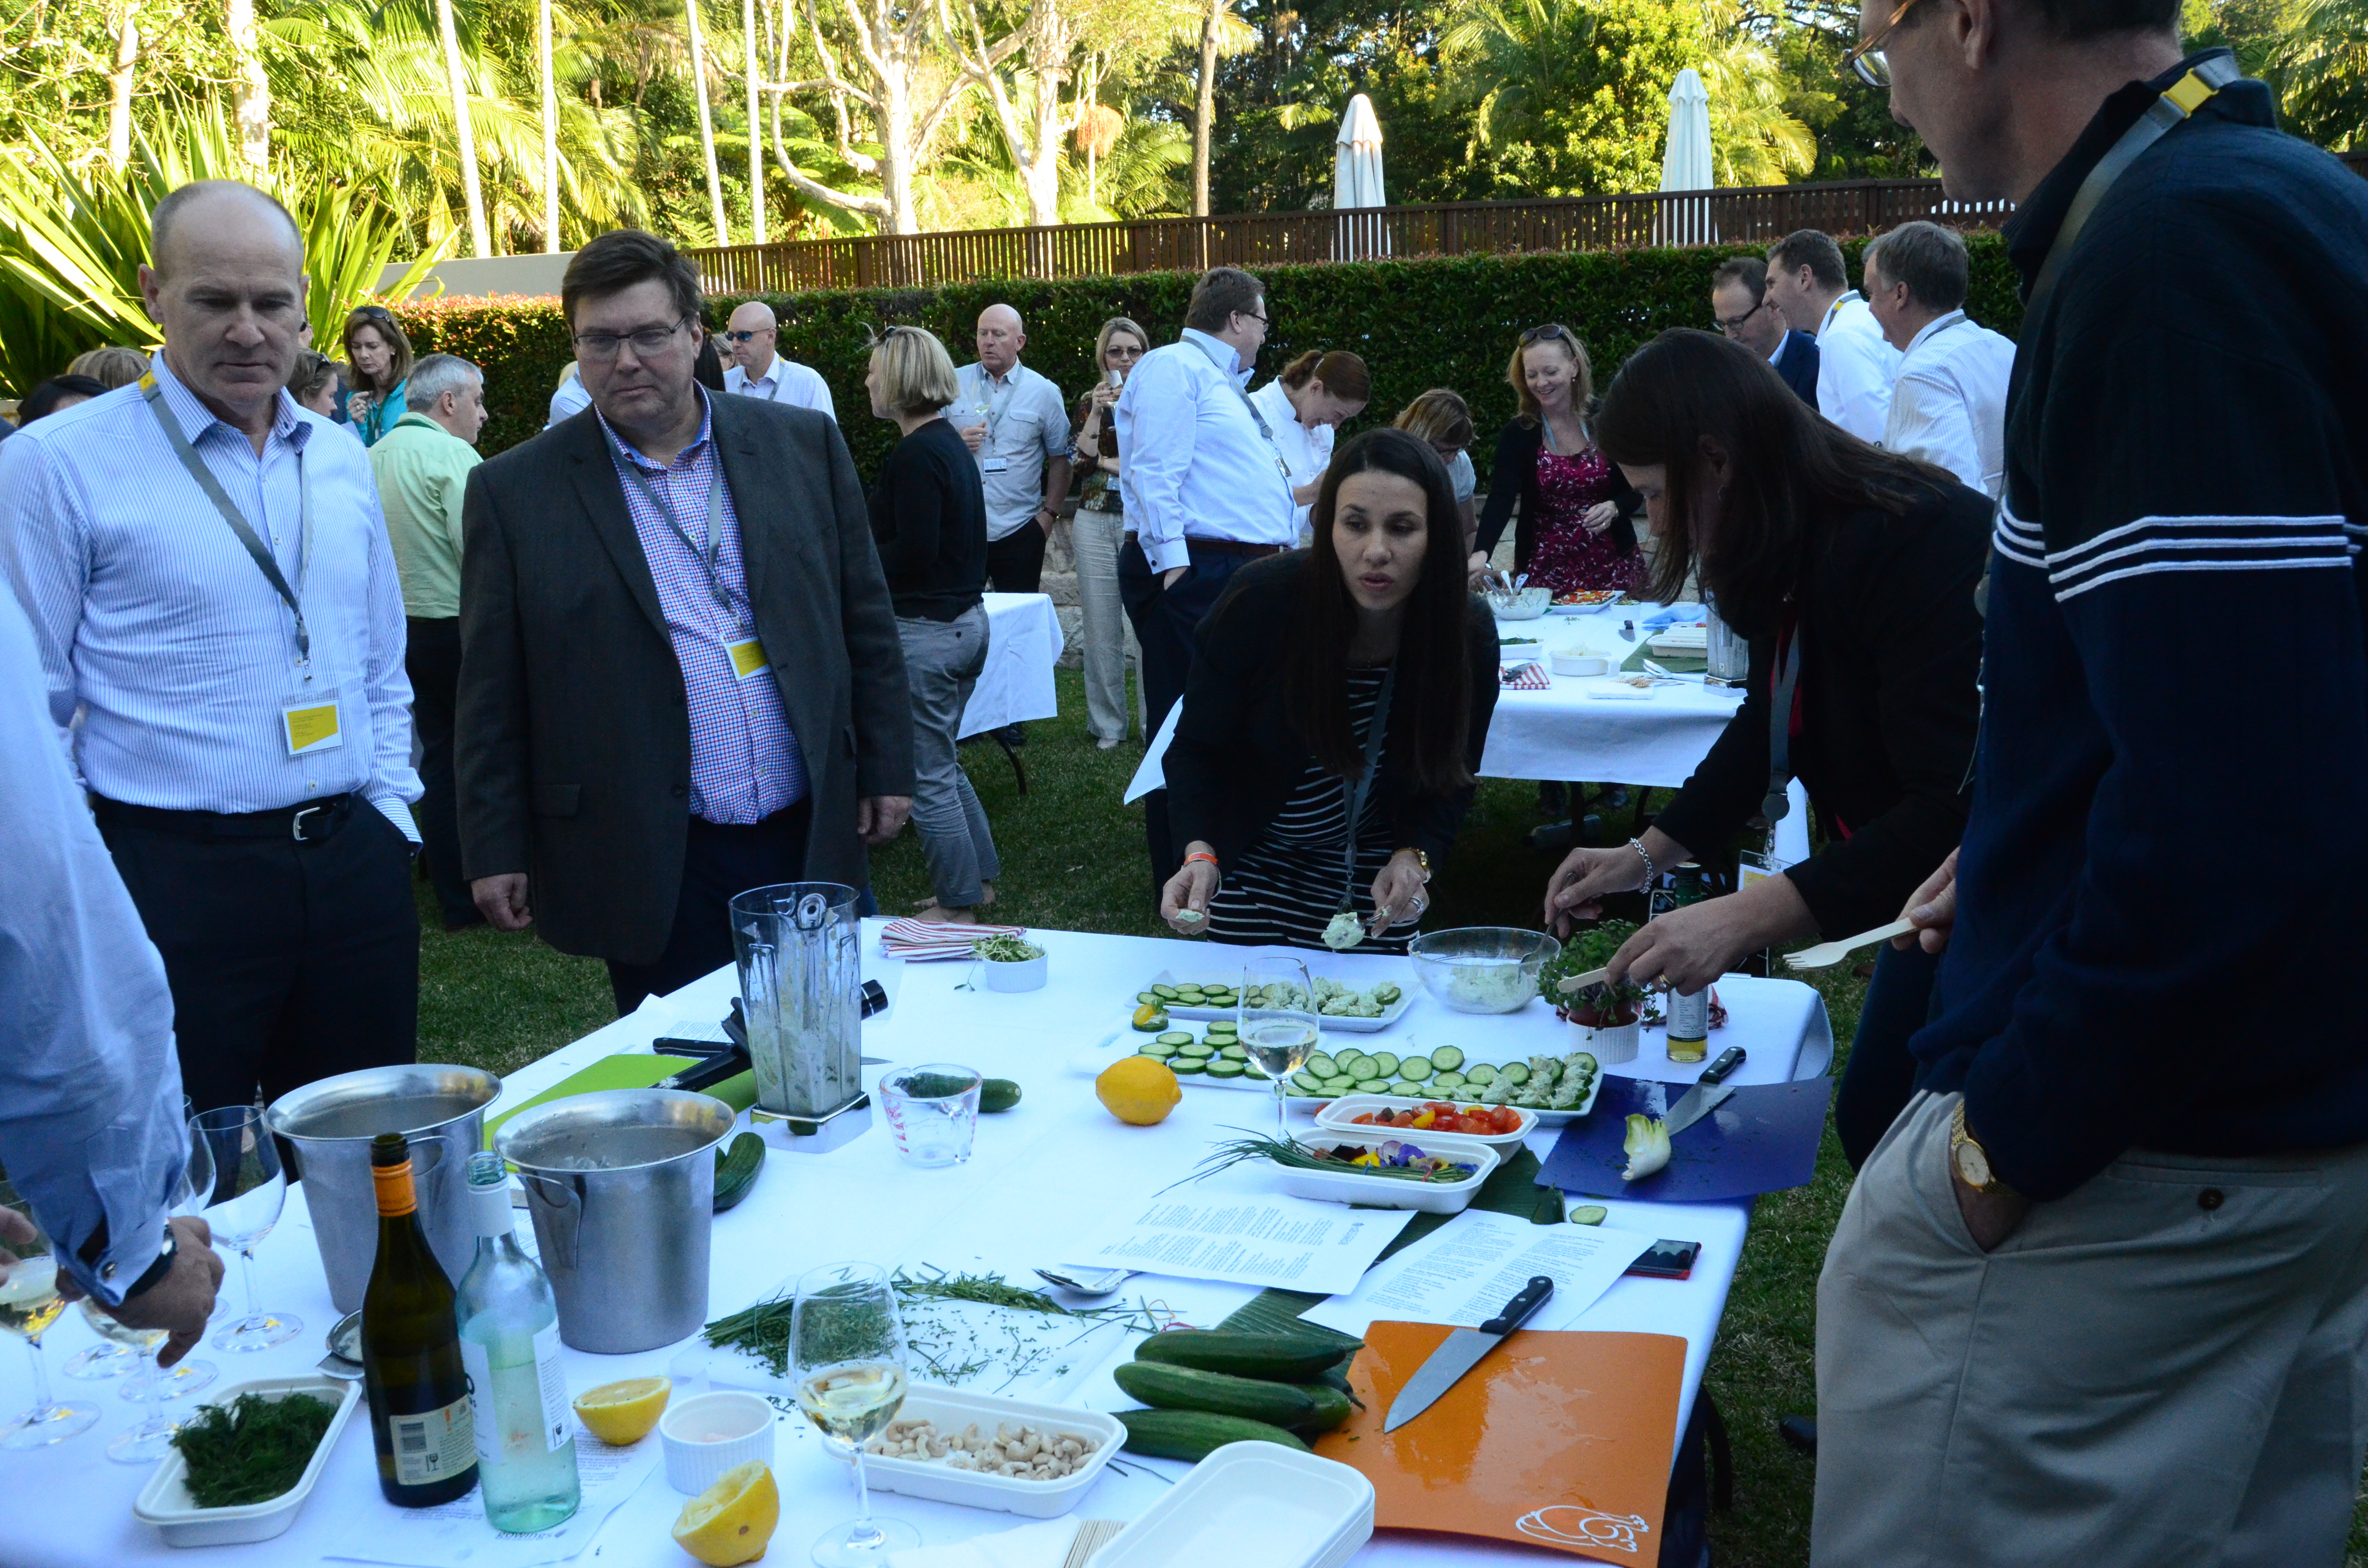 gowings-byron-bay-cooking-school-event-2015